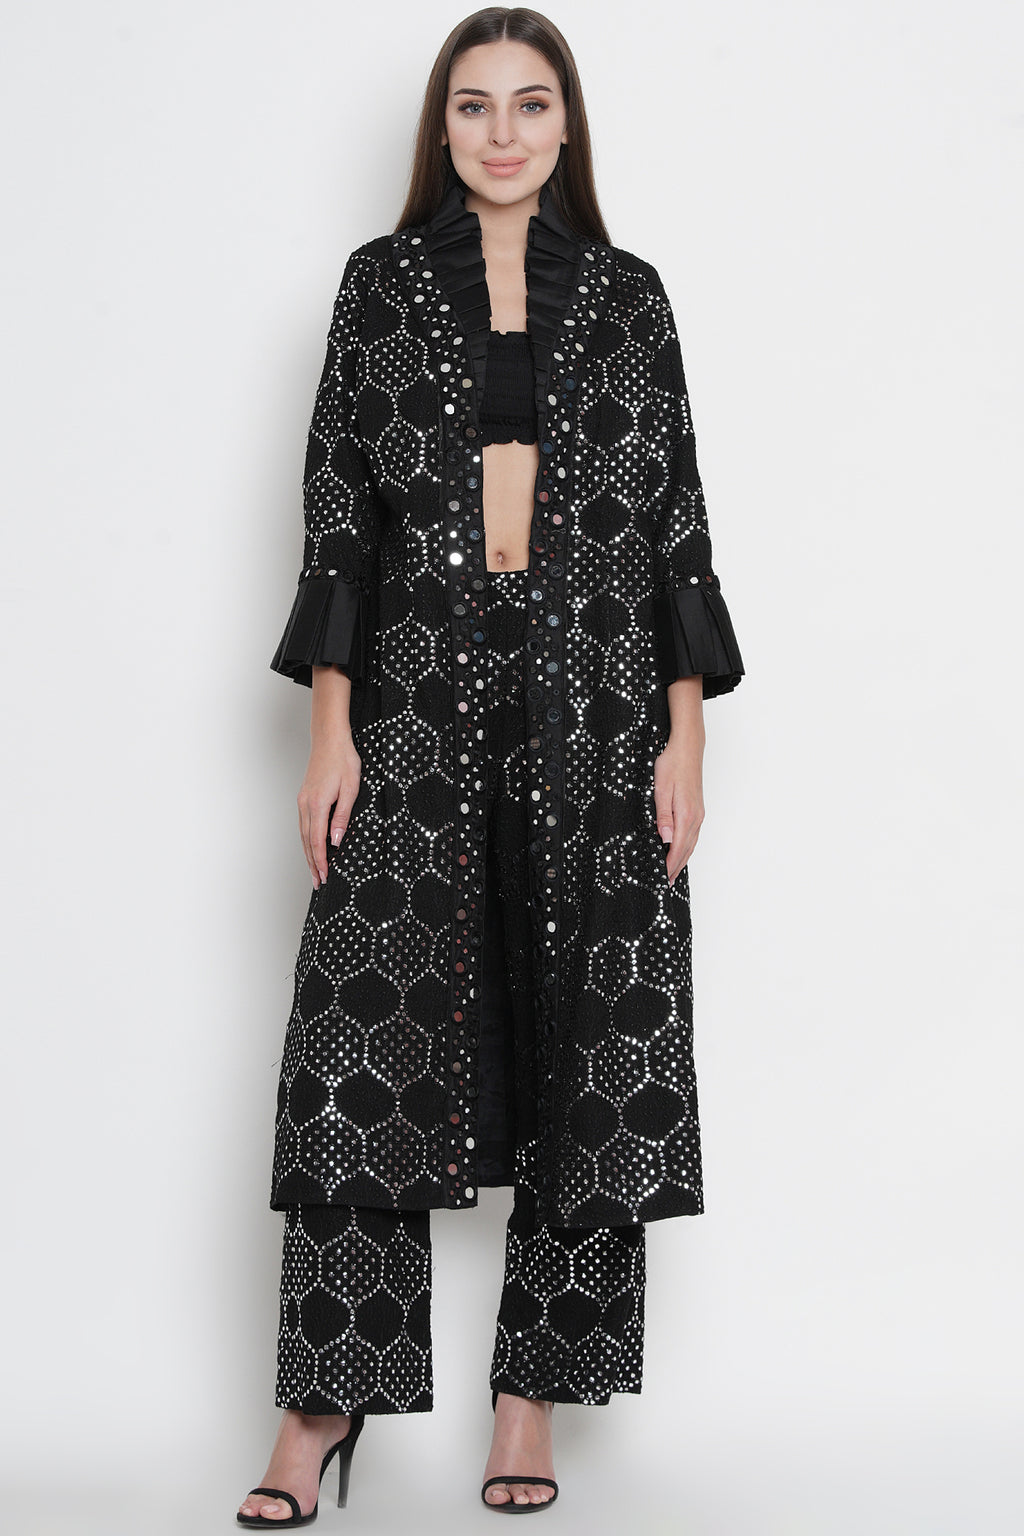 Black Mirrorwork Long Overlay Jacket with Monarch Collars